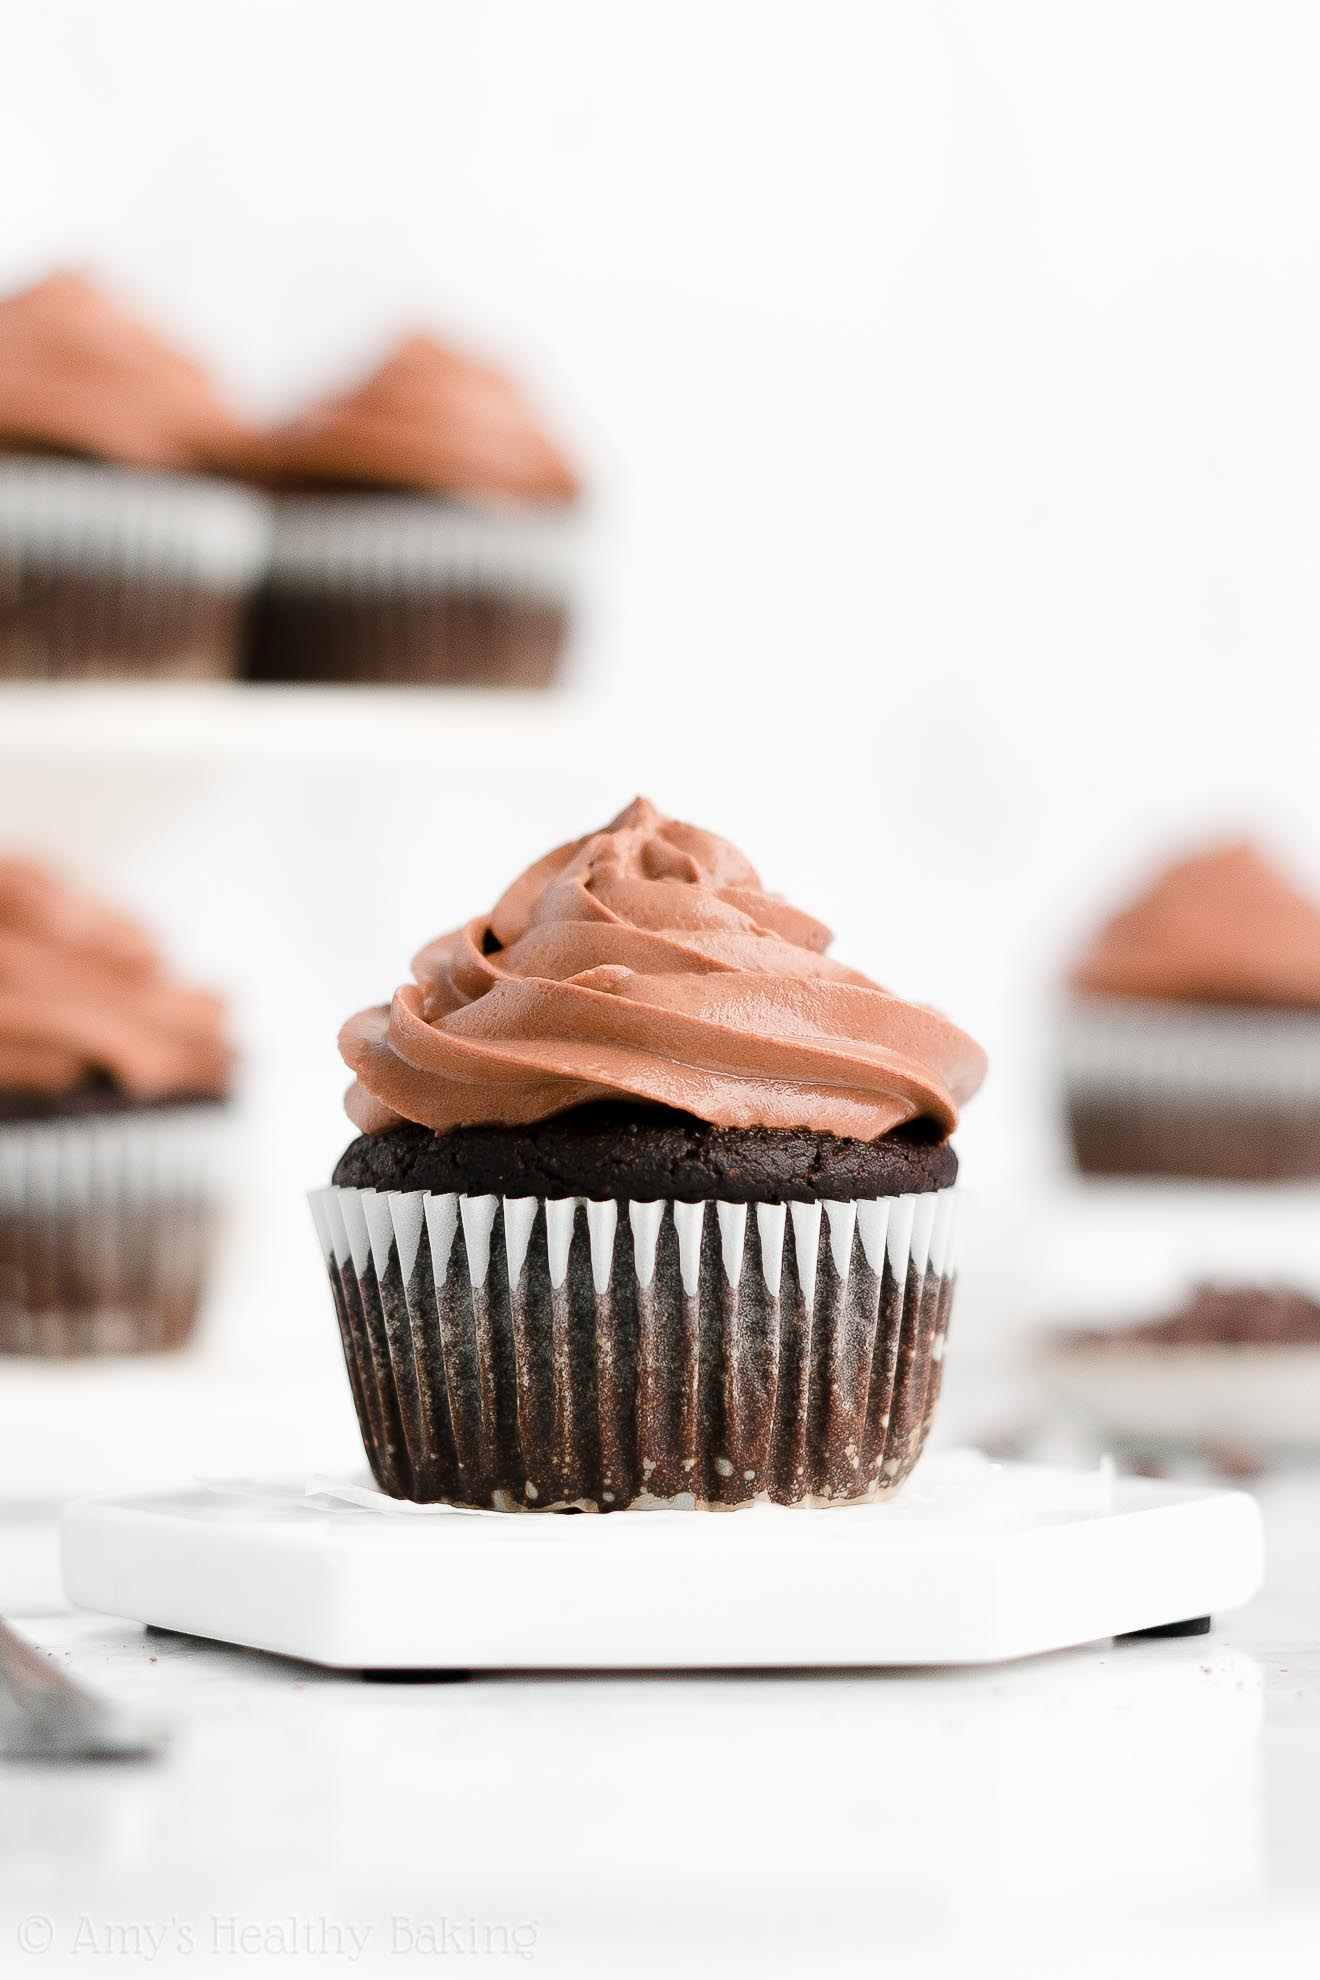 Best Easy Healthy Low Calorie Low Fat No Sugar One-Bowl Chocolate Cupcakes